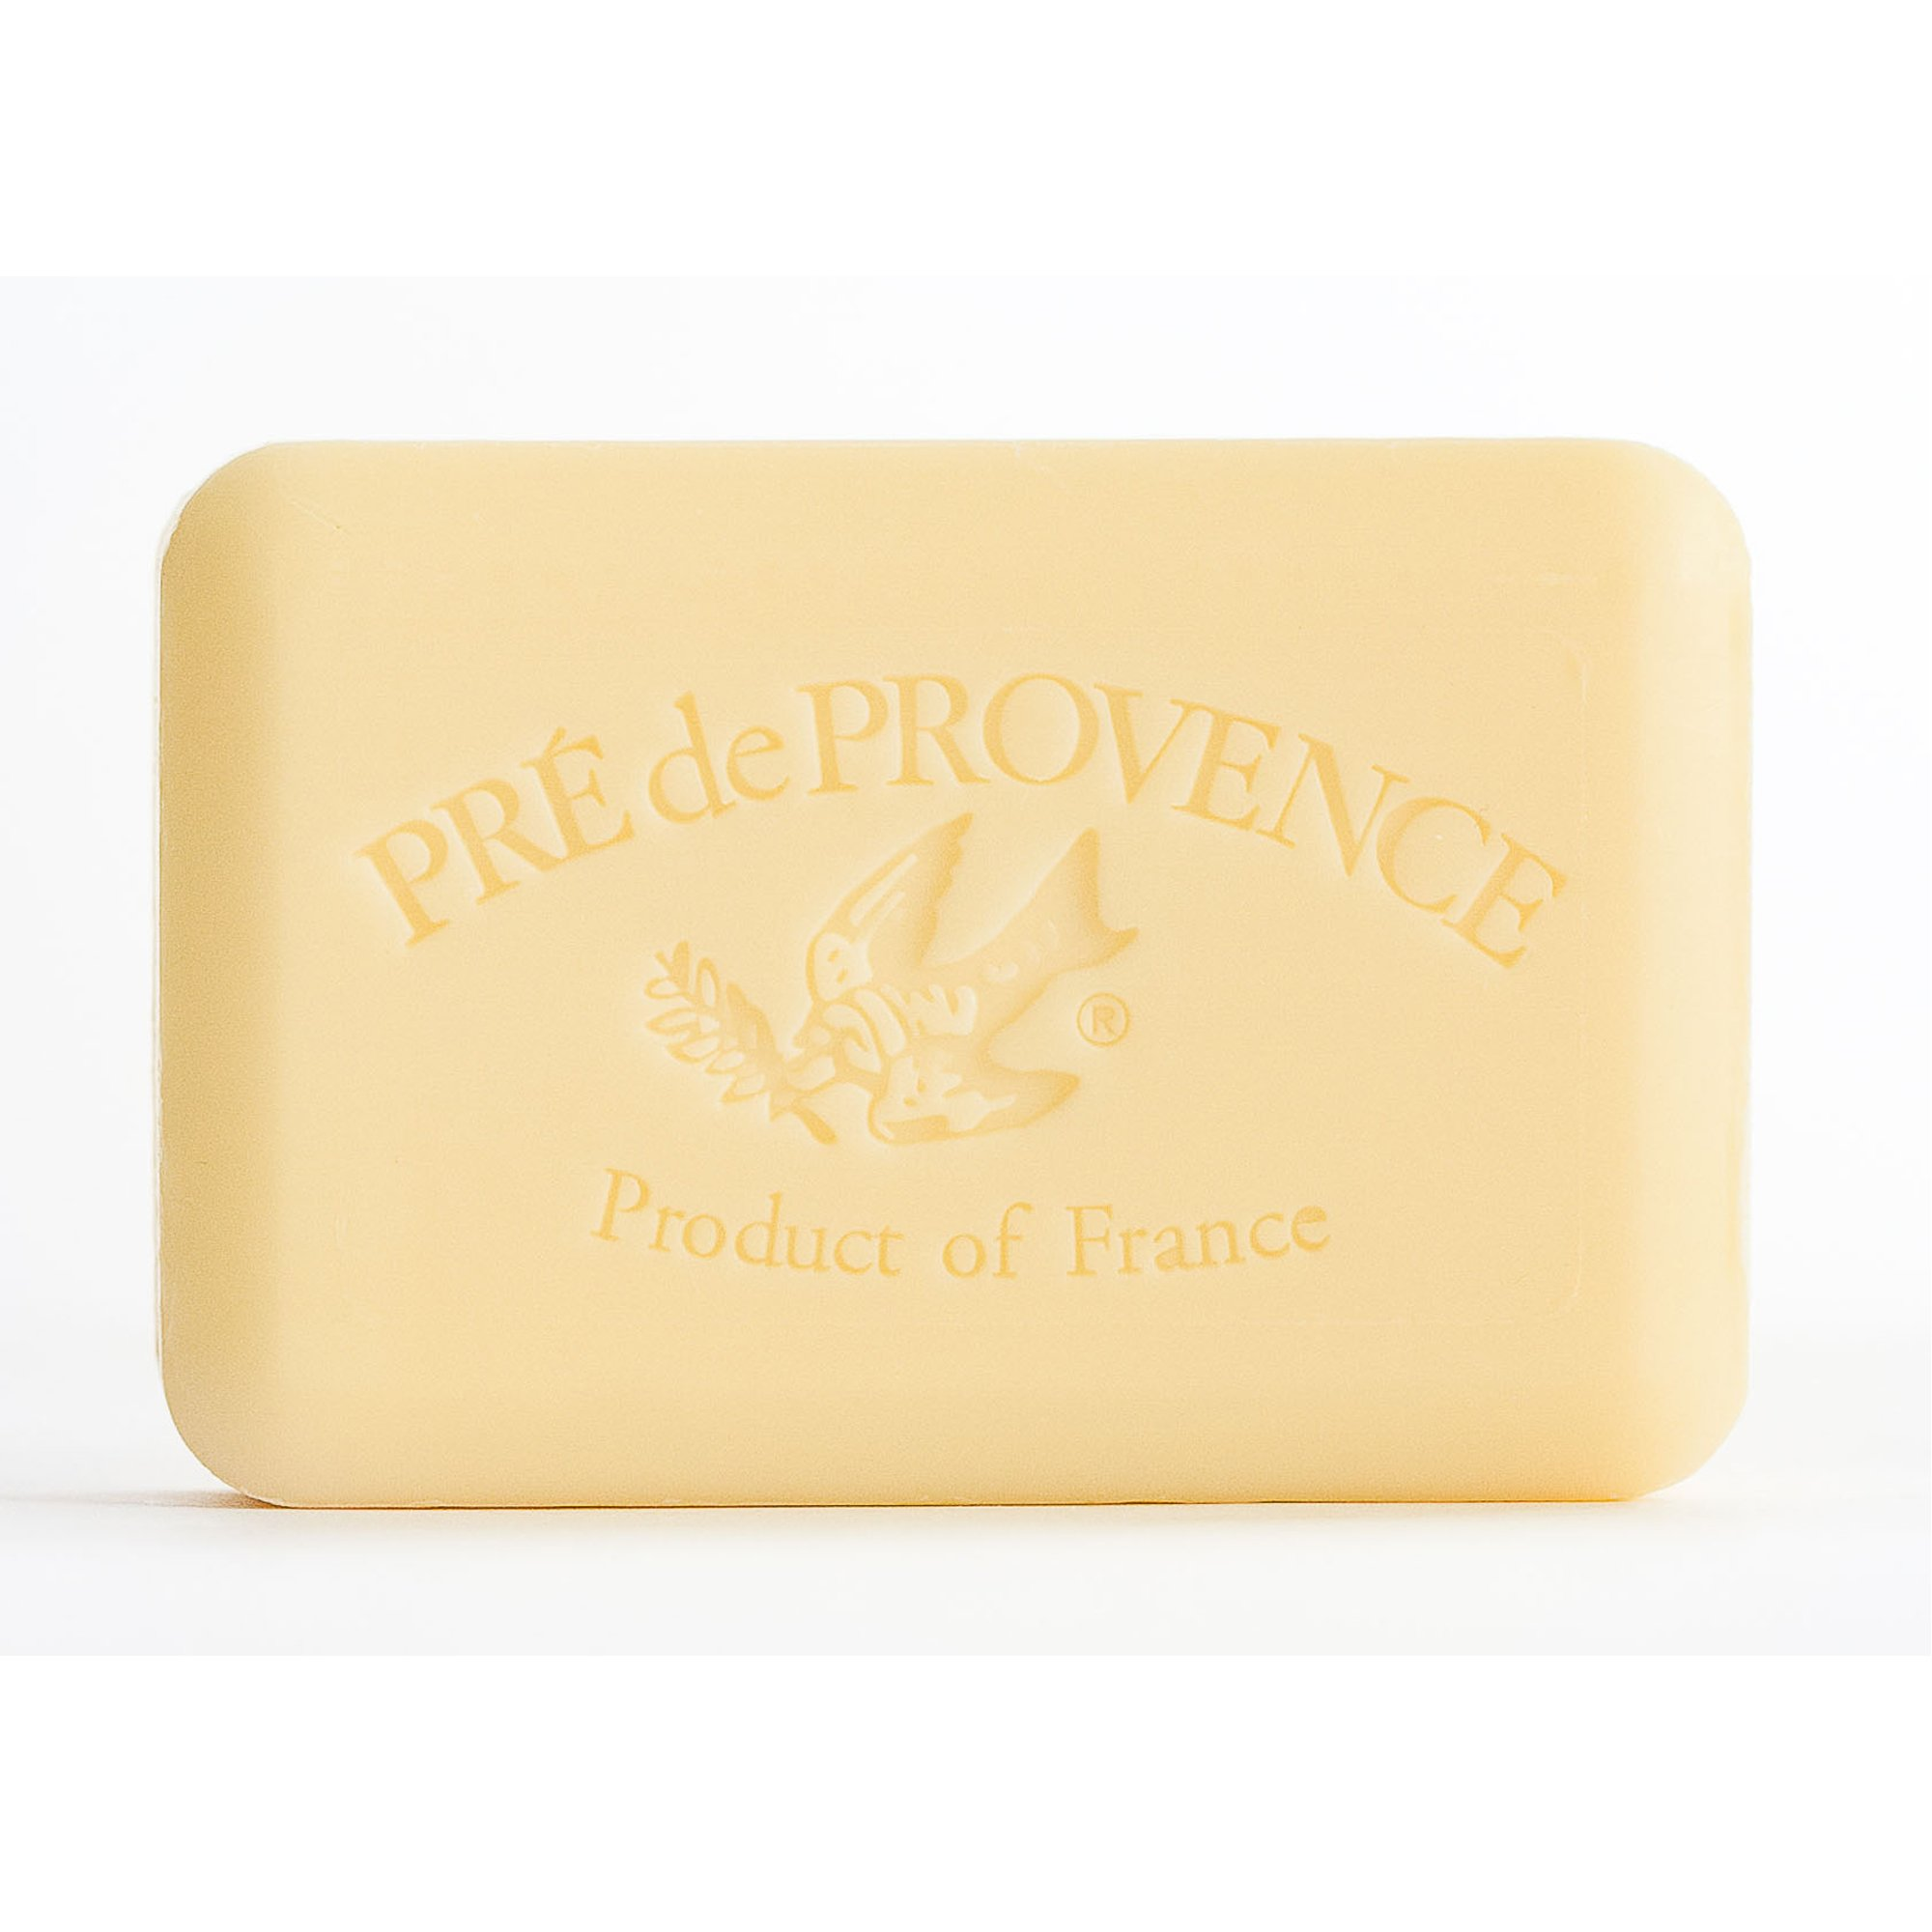 Pre de Provence Artisanal French Soap Bar Enriched with Shea Butter, Quad-Milled For A Smooth & Rich Lather (250 grams) - Agrumes